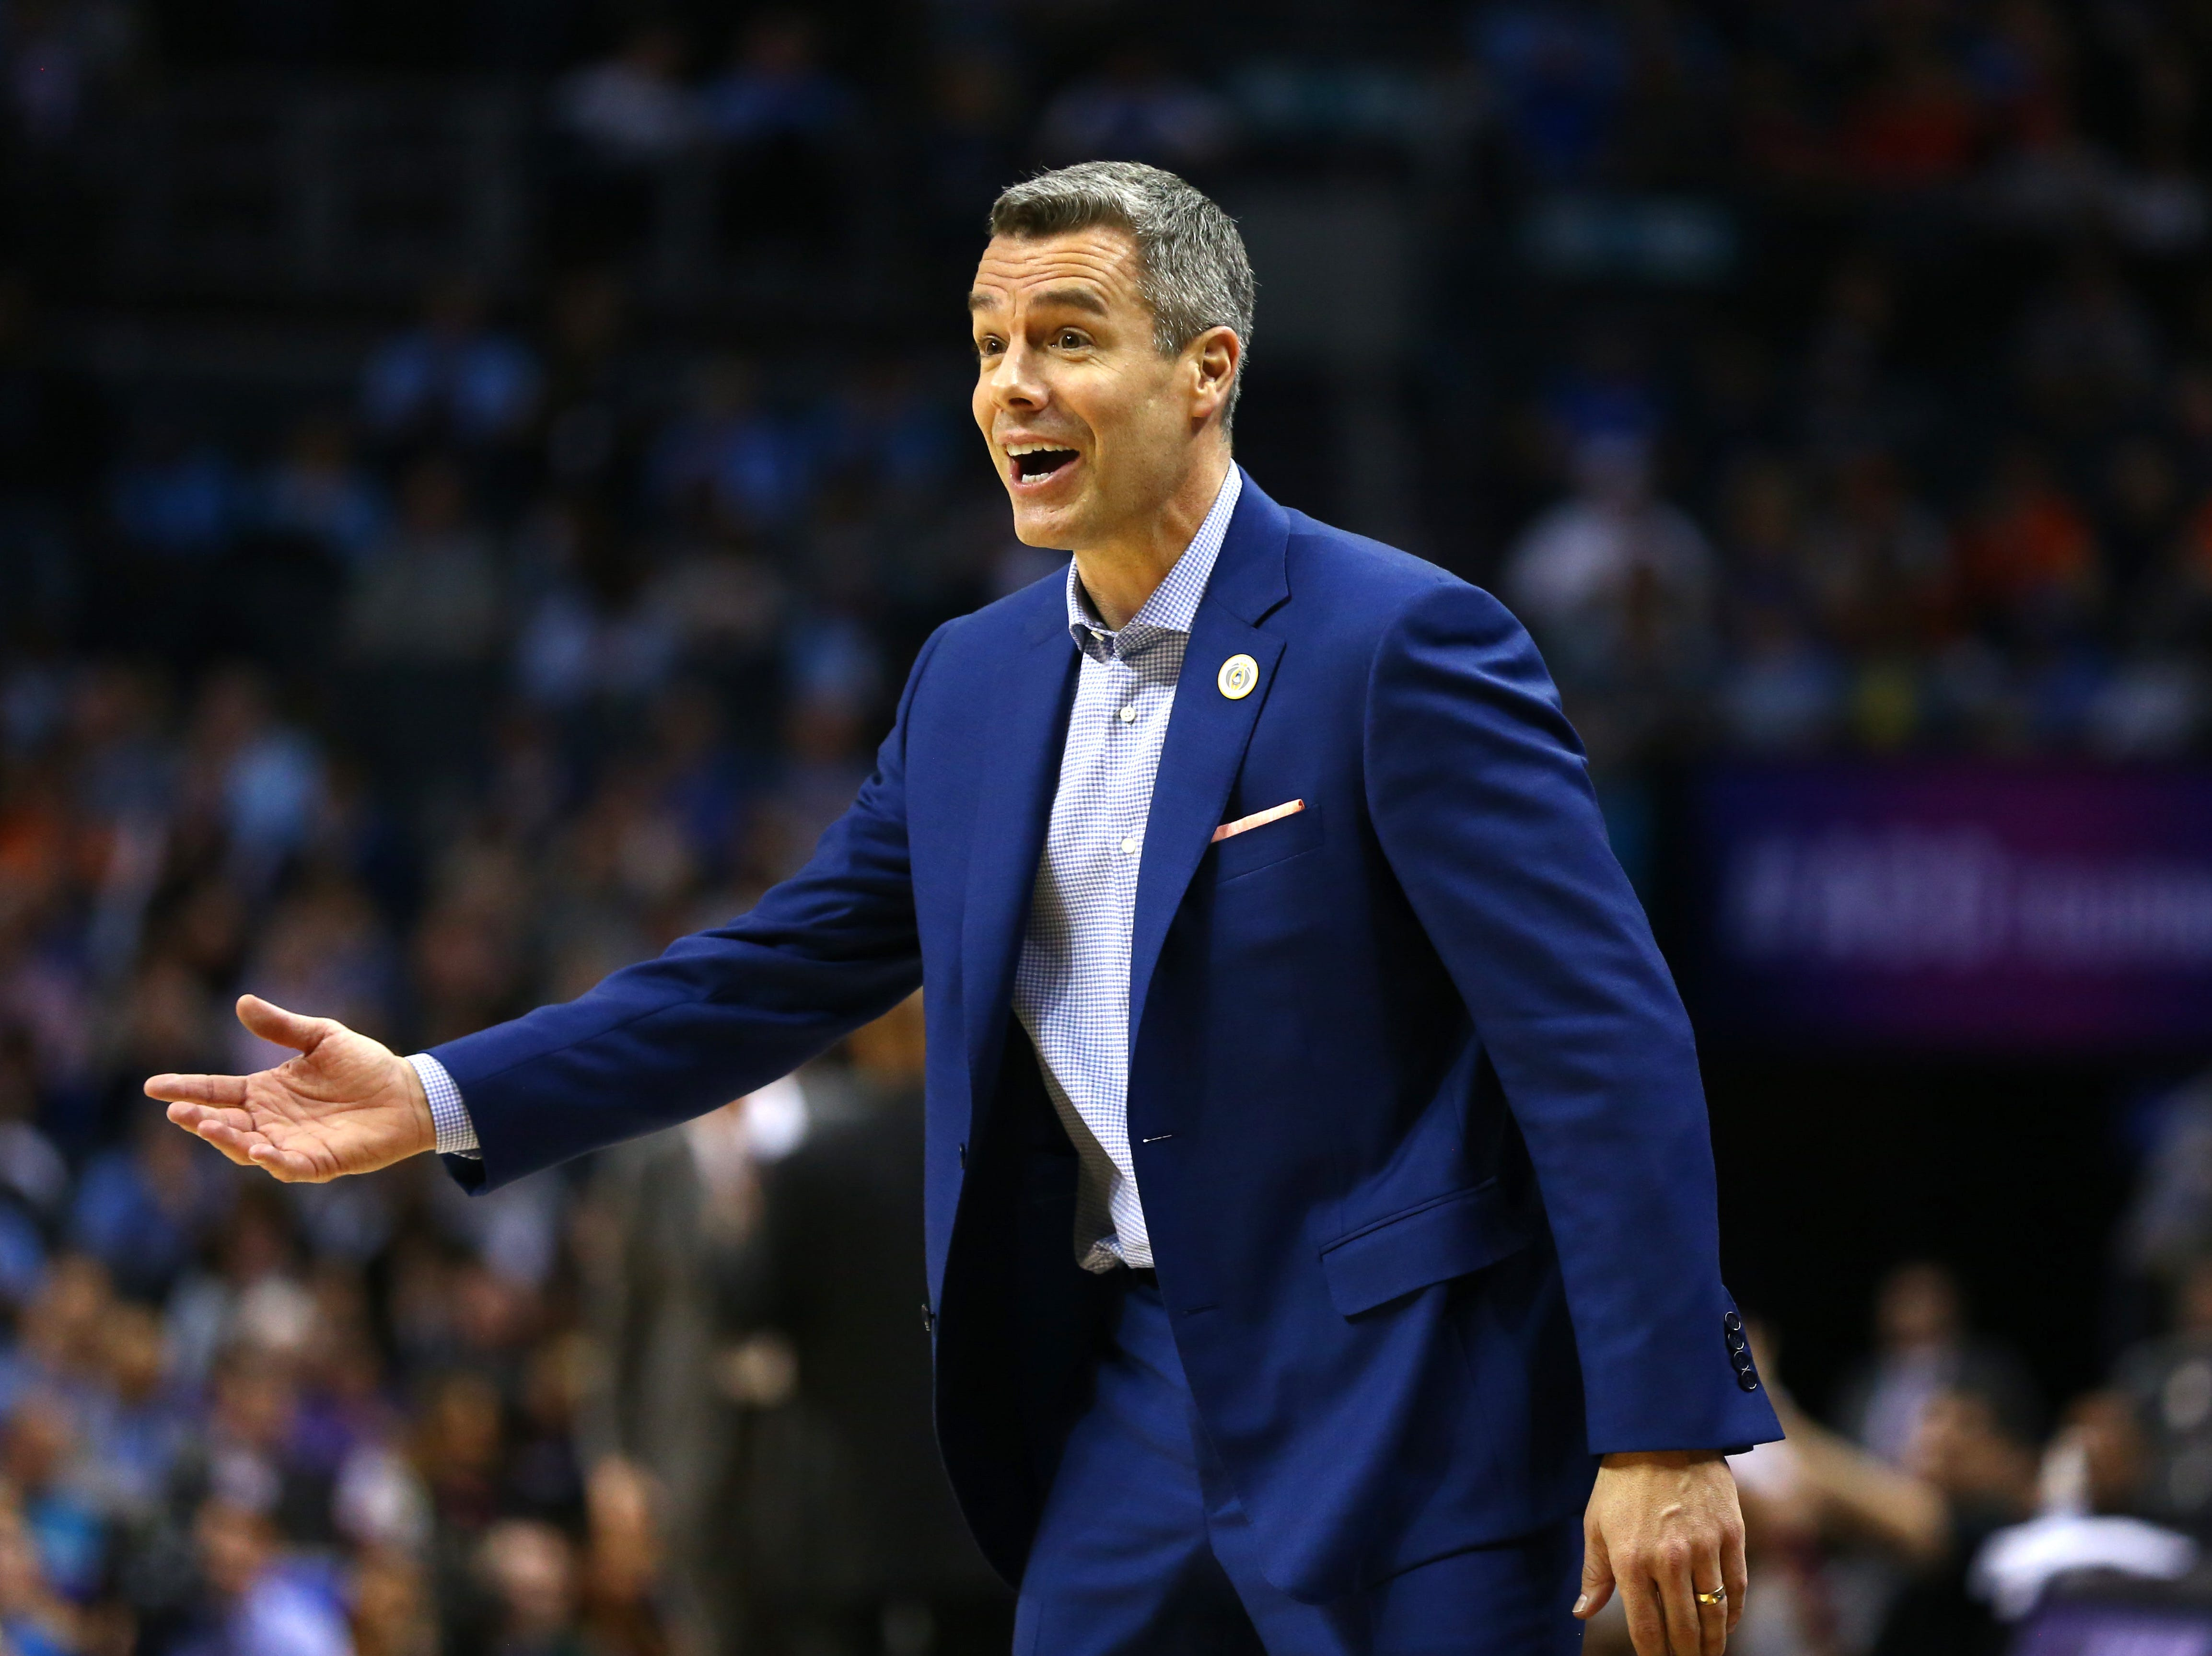 Mar 15, 2019; Charlotte, NC, USA; Virginia Cavaliers head coach Tony Bennett reacts to a call in the second half against the Florida State Seminoles in the ACC conference tournament at Spectrum Center. Mandatory Credit: Jeremy Brevard-USA TODAY Sports